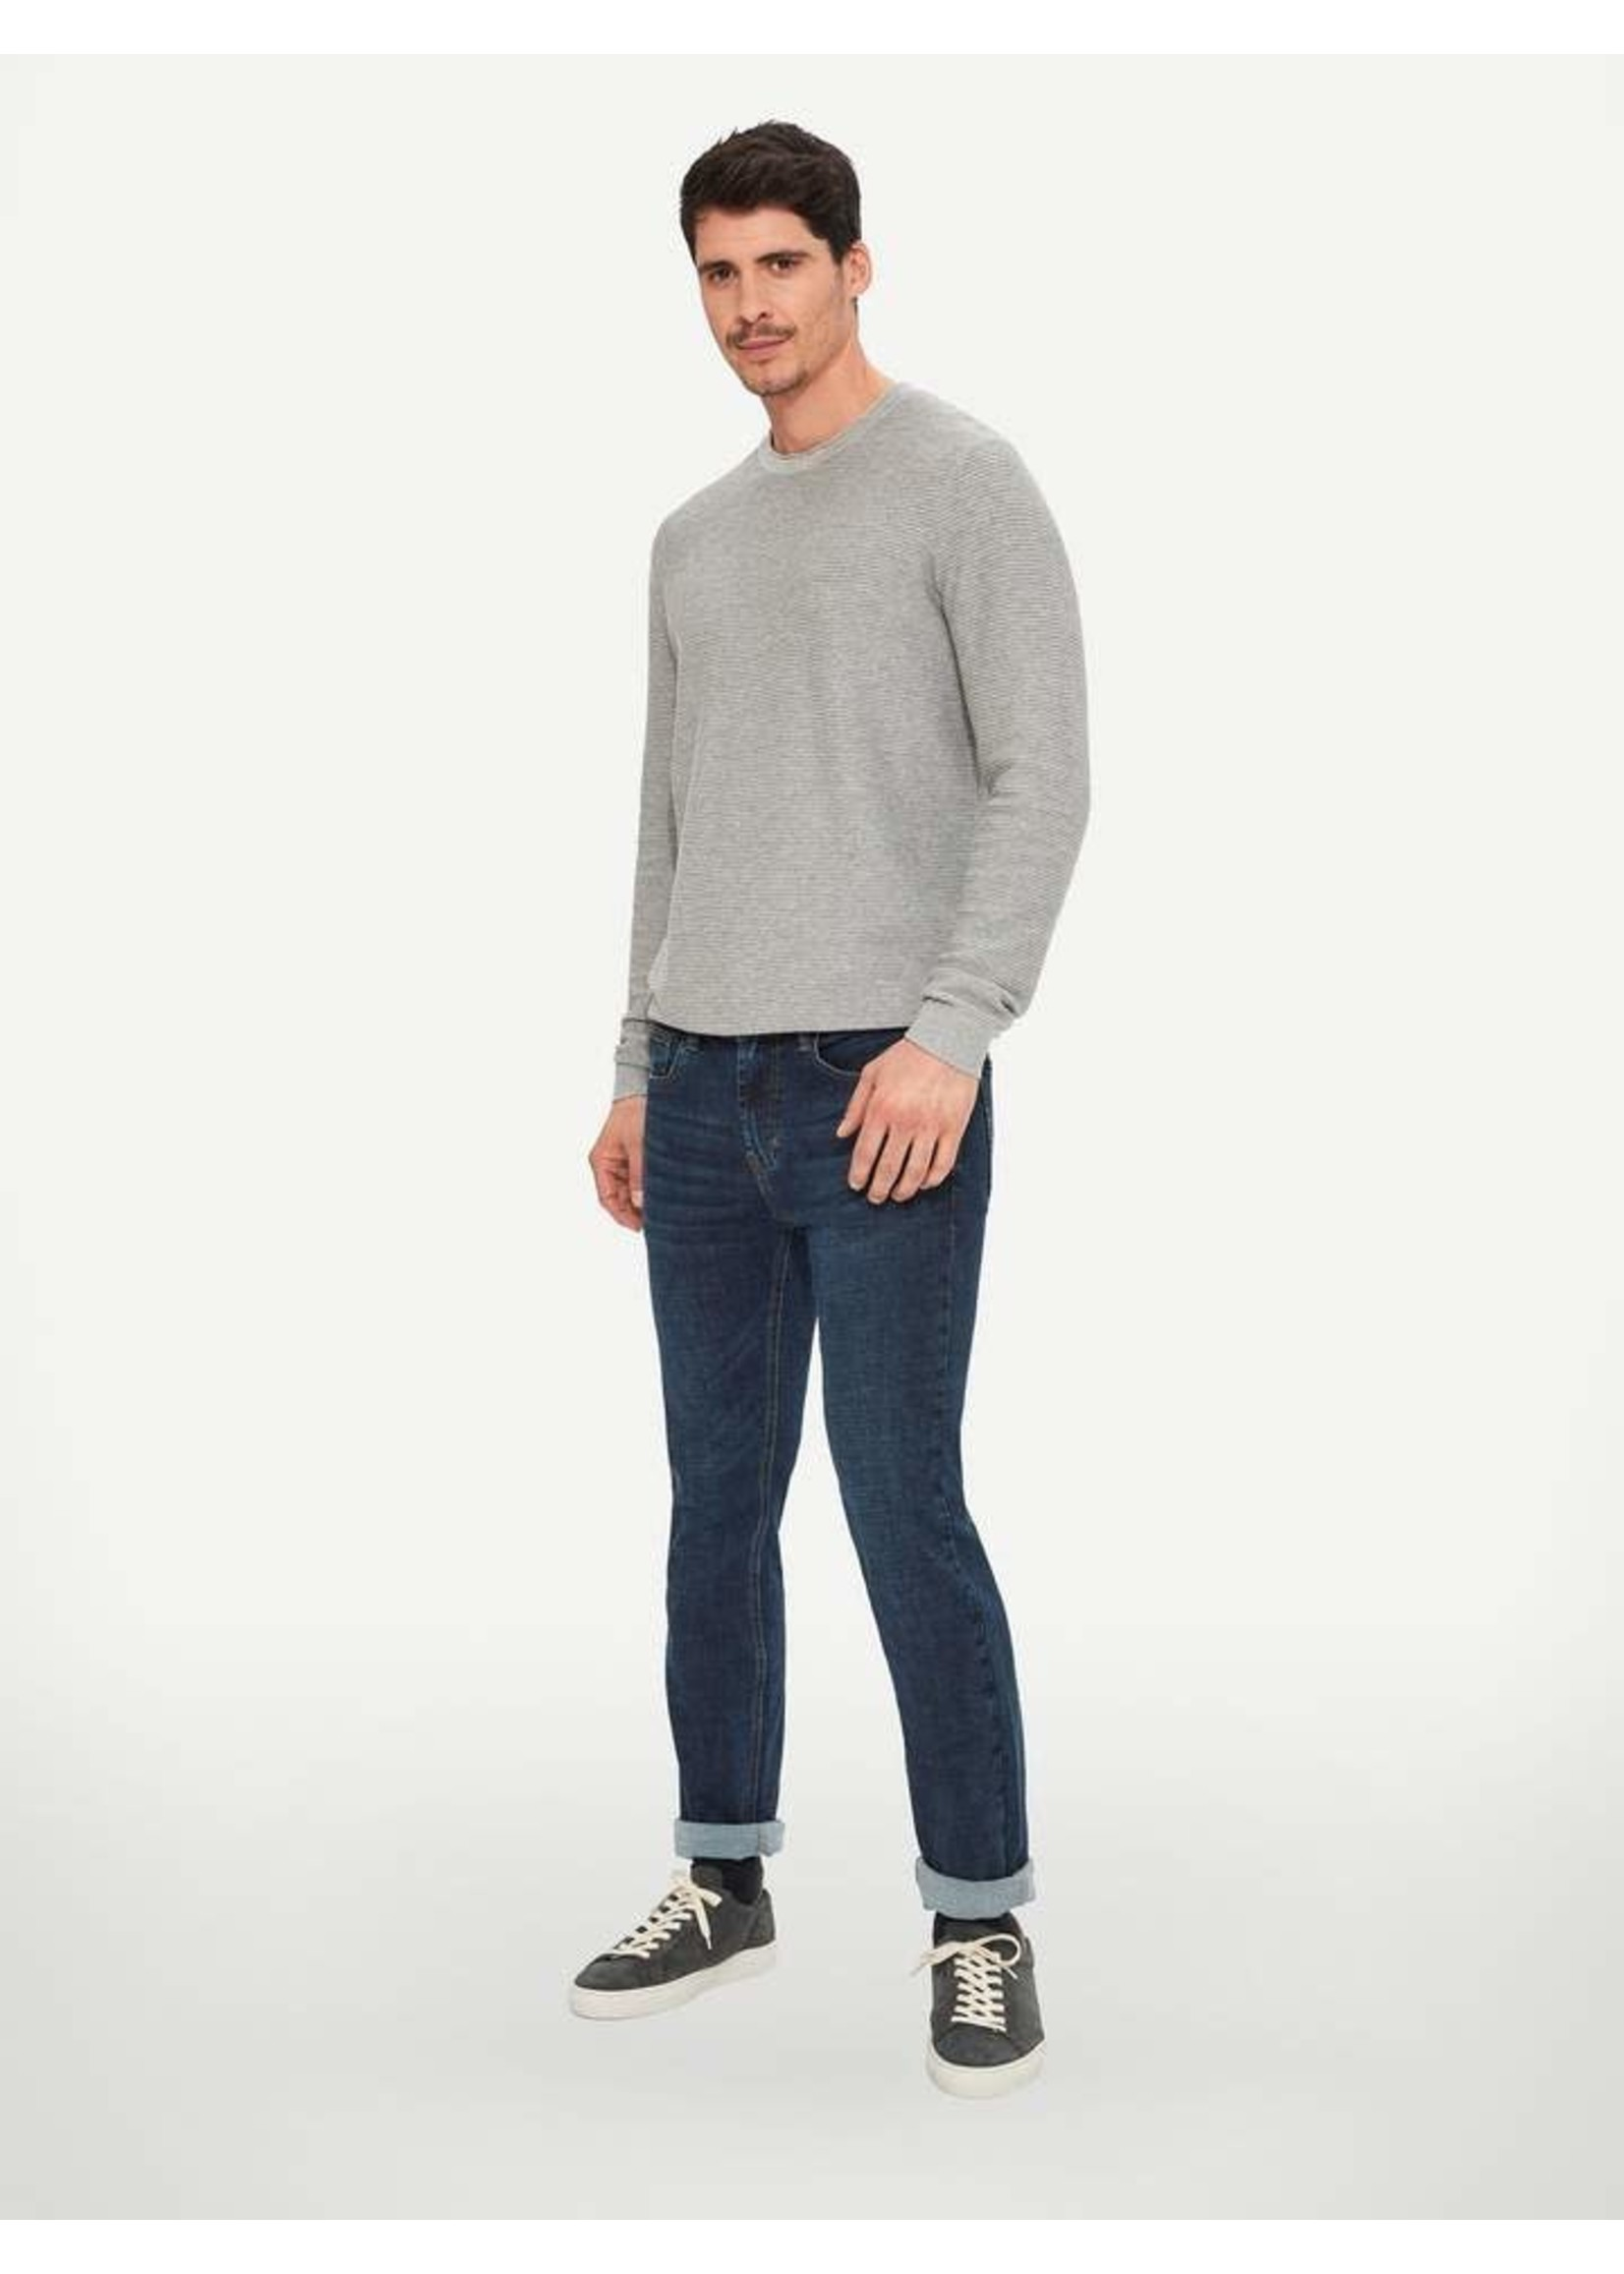 """Lois Jeans Canada The """"New Star 7142-95"""" by Lois Jeans"""